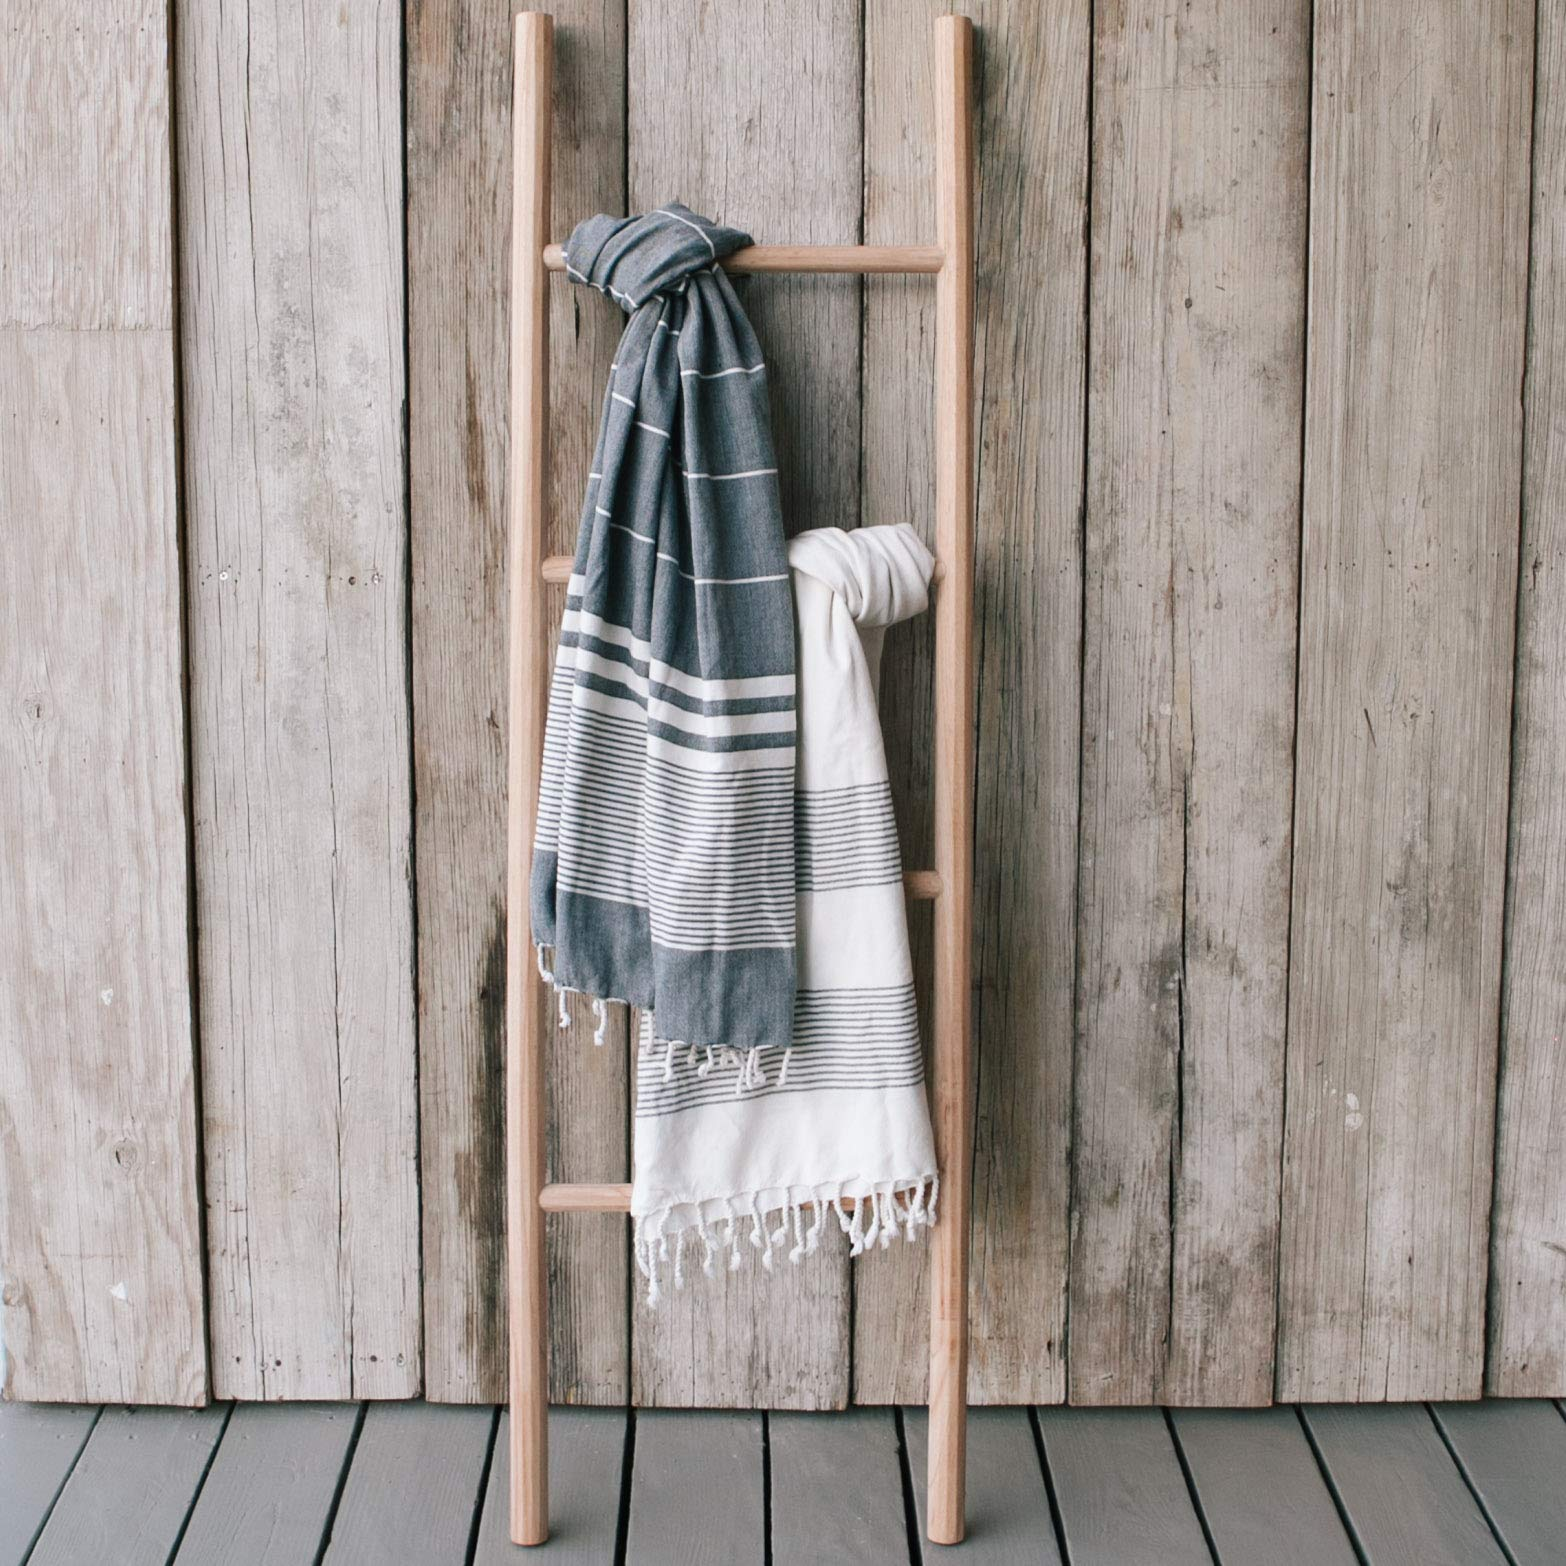 Sandstone & Sage Blanket-Ladder | Hand Made Natural 5ft Wooden Ladder Shelf | Farmhouse Decor to Use for Quilt Rack | Crafted from Sustainable Wood by Sandstone & Sage